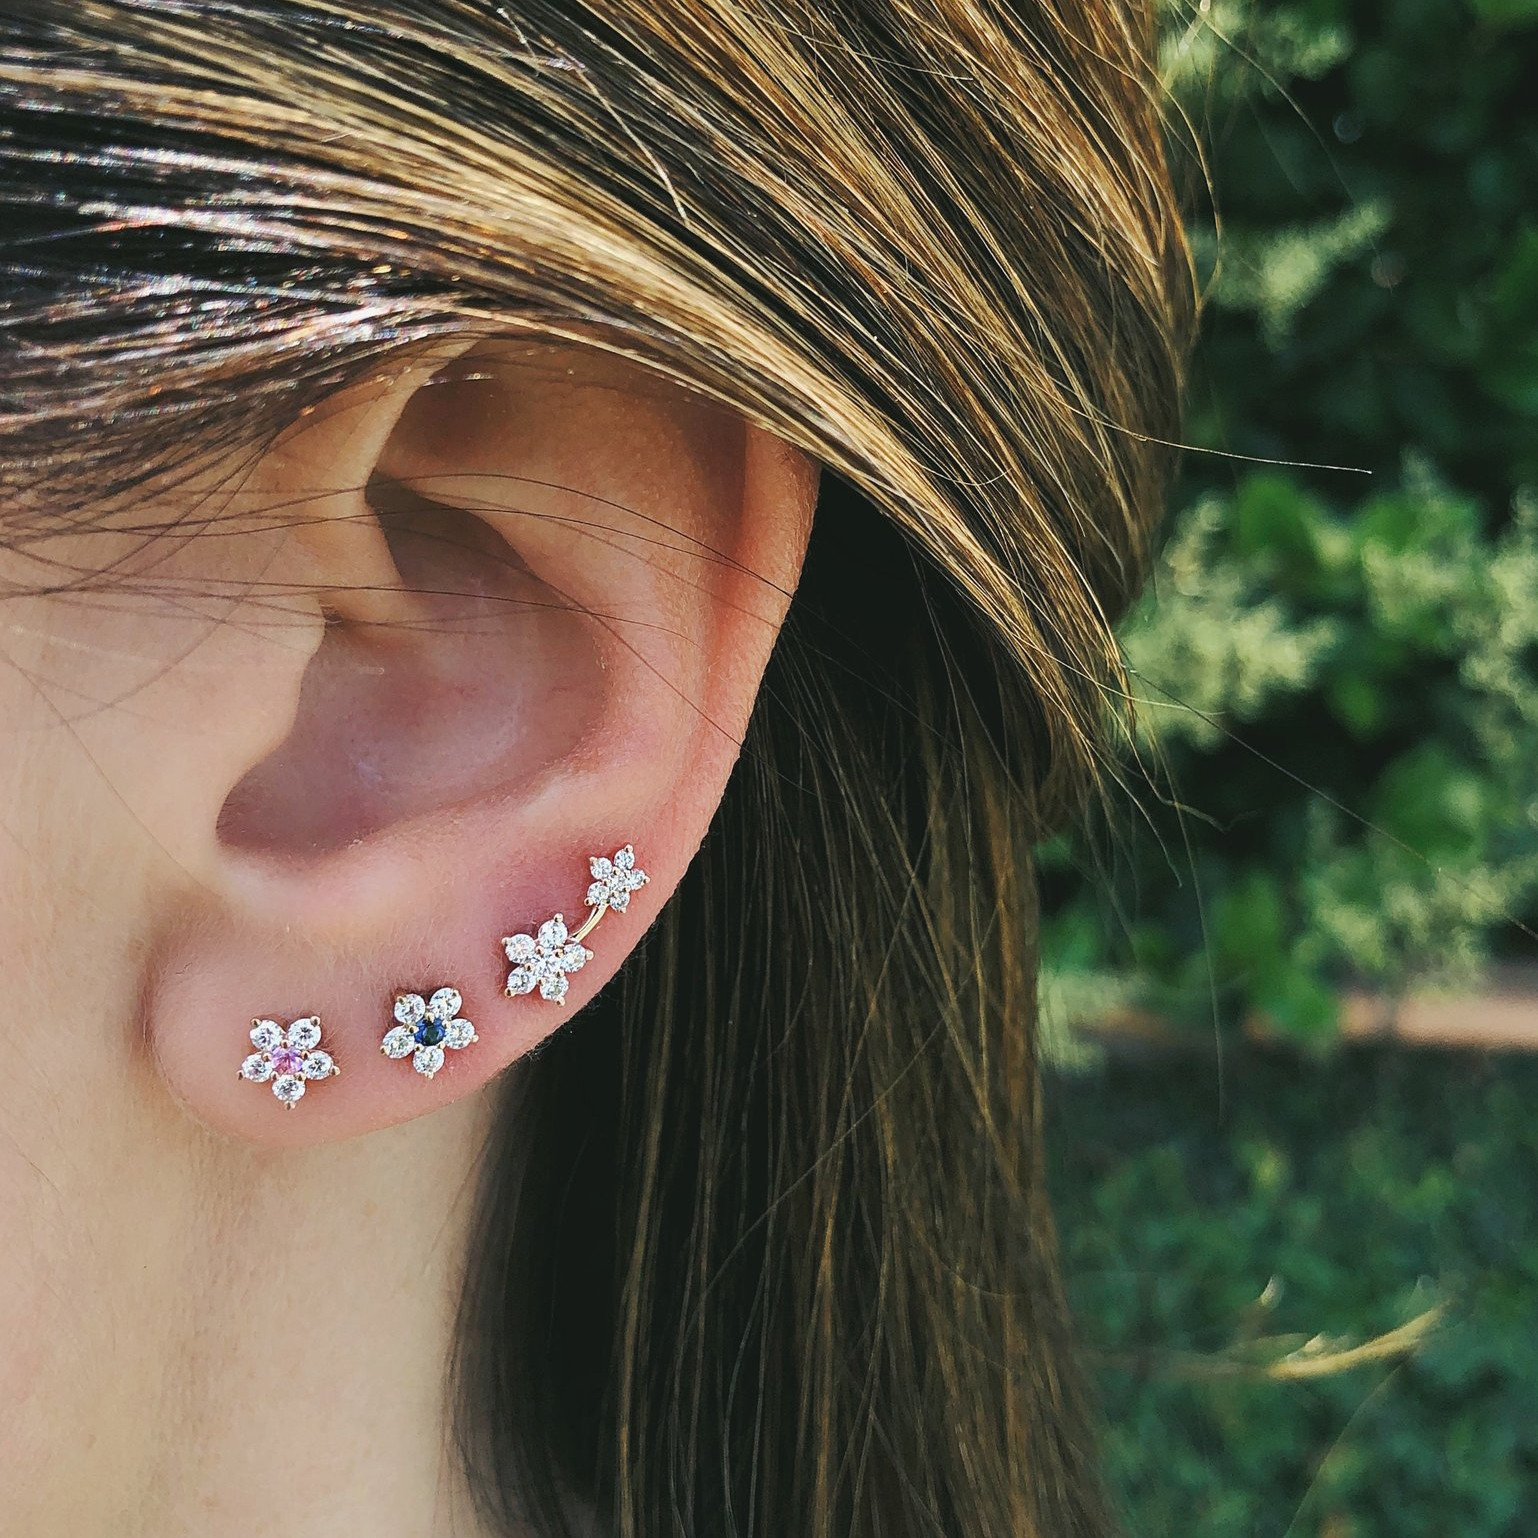 Left Diamond Double Flower Stud Earring by EF Collection on Model